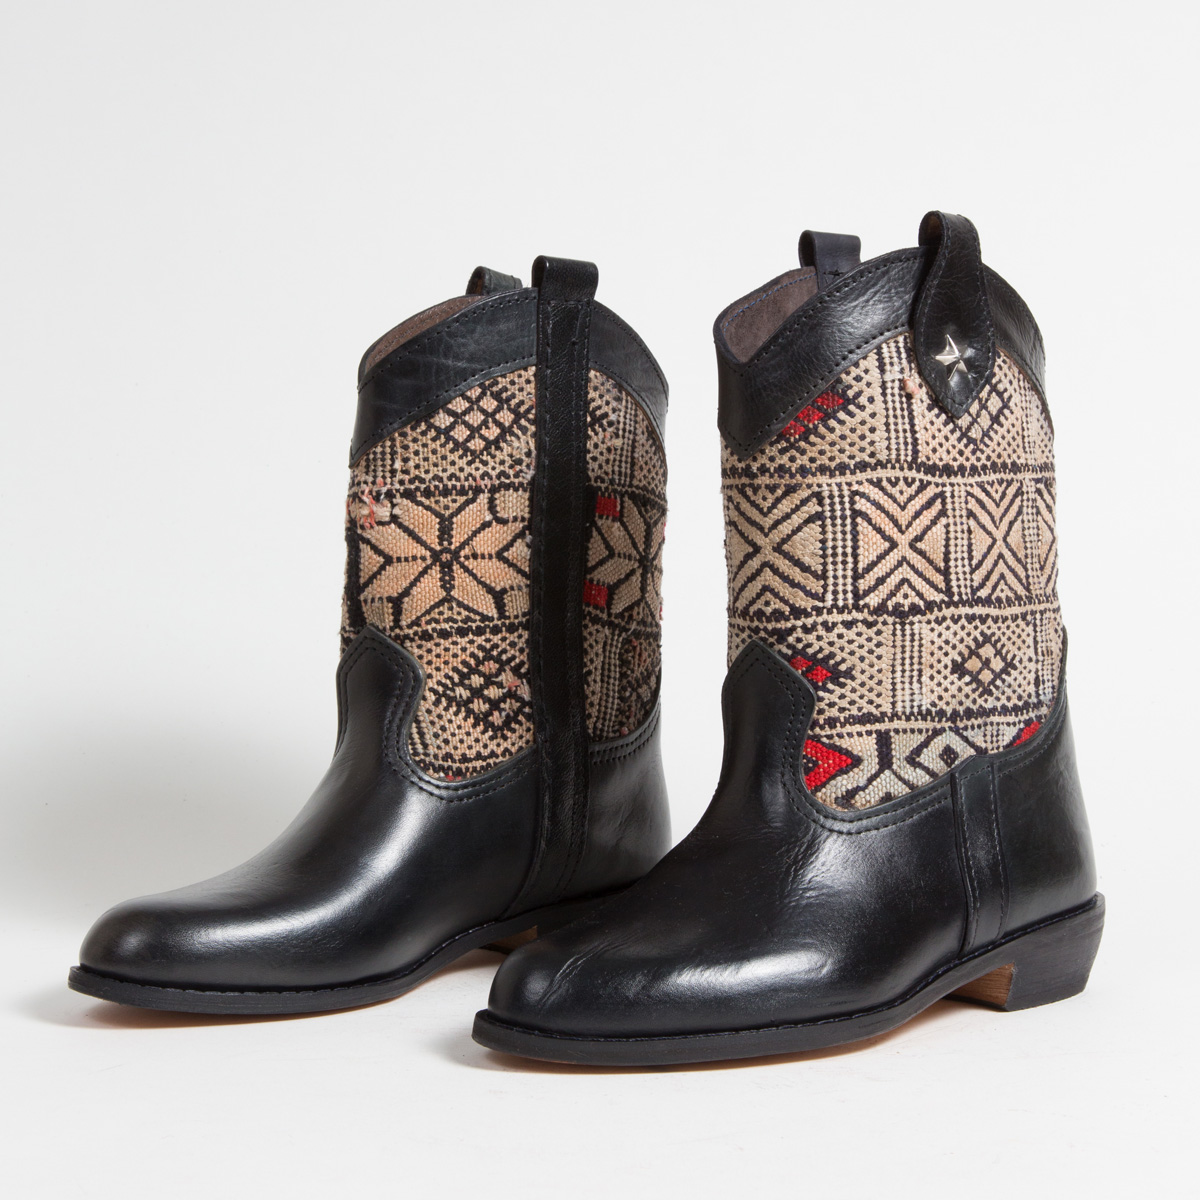 Bottines Kilim cuir mababouche artisanales (Réf. MN8-39)